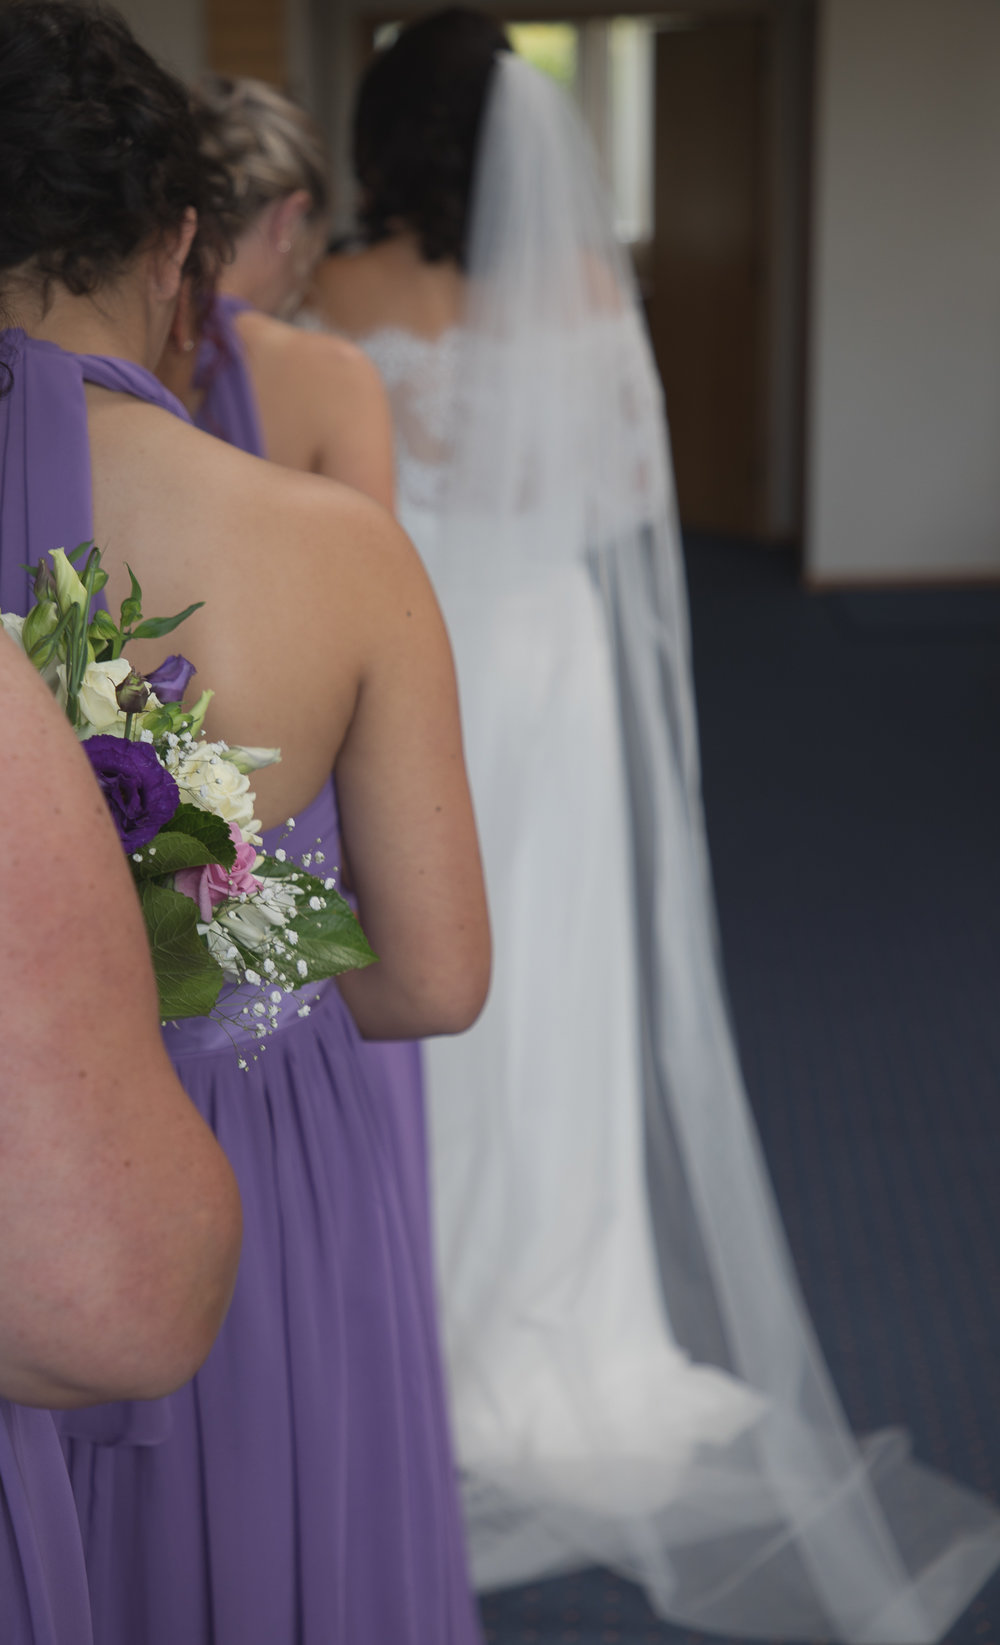 purple bridesmaid dresses and flowers at alter during ceremony